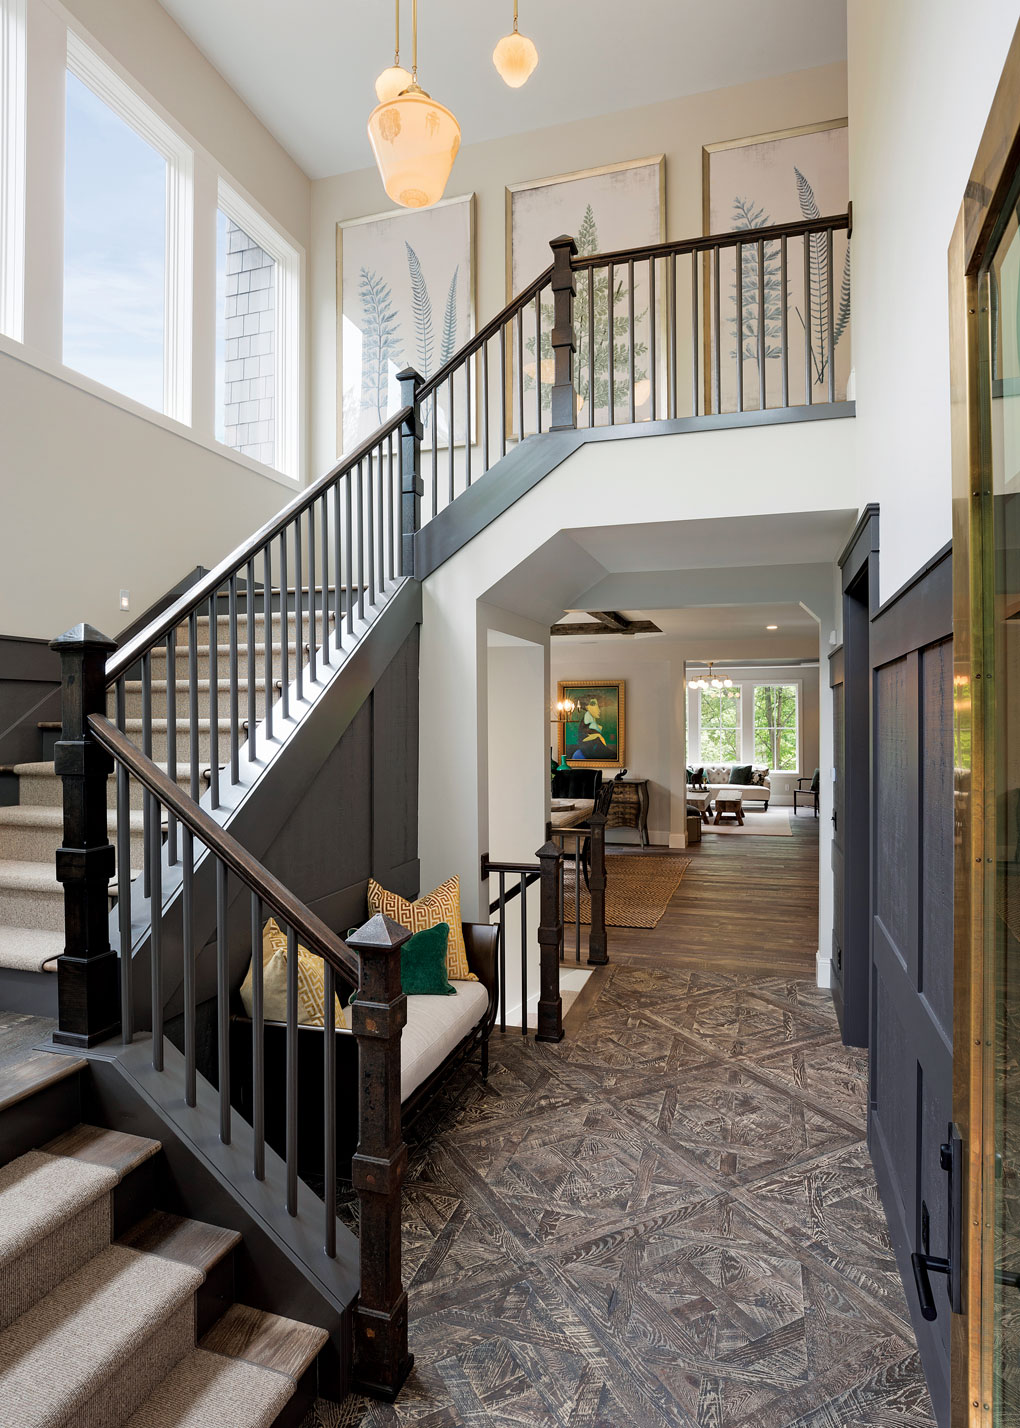 The entry is distinctive, from the brass-wrapped front door to the customized finish of the parquet flooring to the salvaged newel posts and vintage milk-glass lighting that hangs overhead.